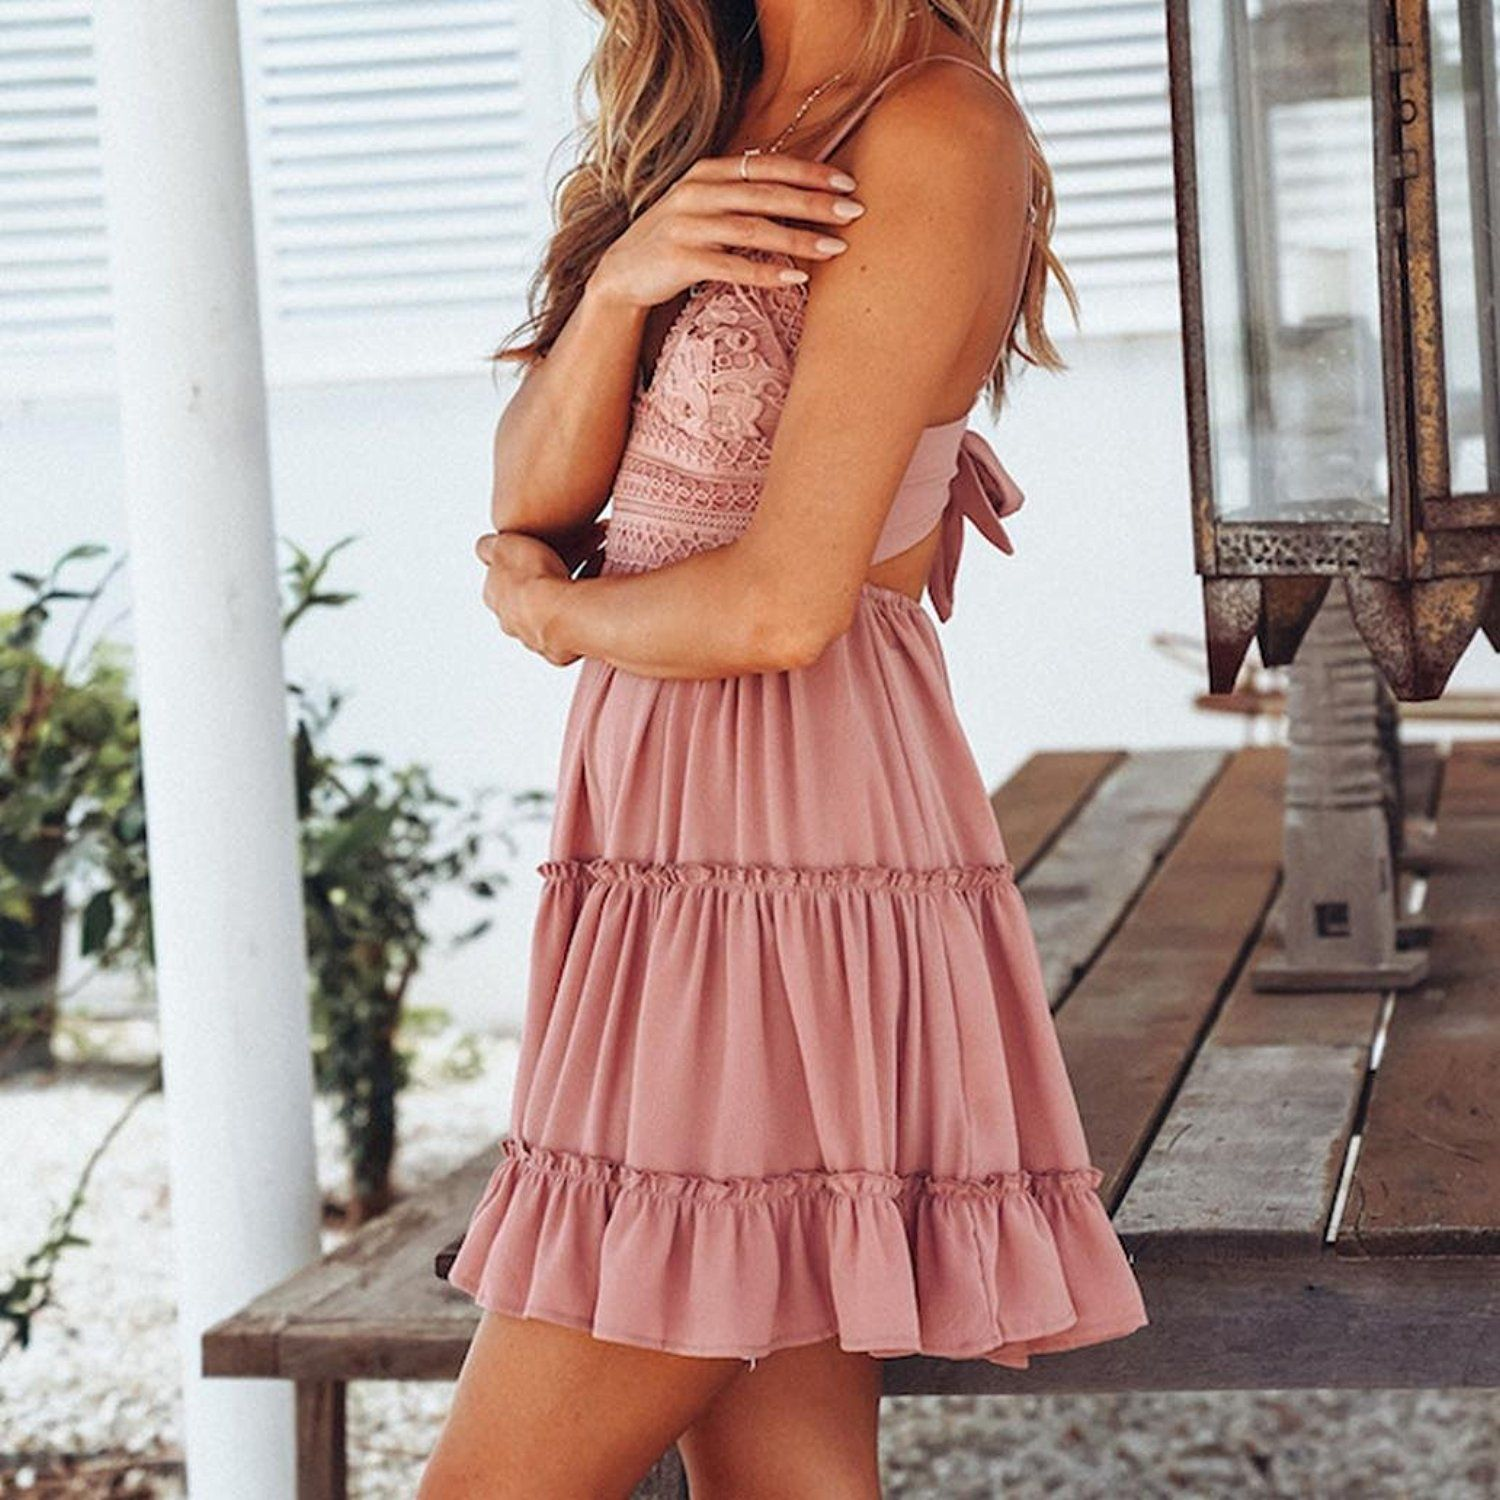 8fa6715533 Summer Dress Clearance Women Sexy Spaghetti Strap Backless Mini Dress Solid  Lace Bowknot Party Beach Sundress at Amazon Women s Clothing store